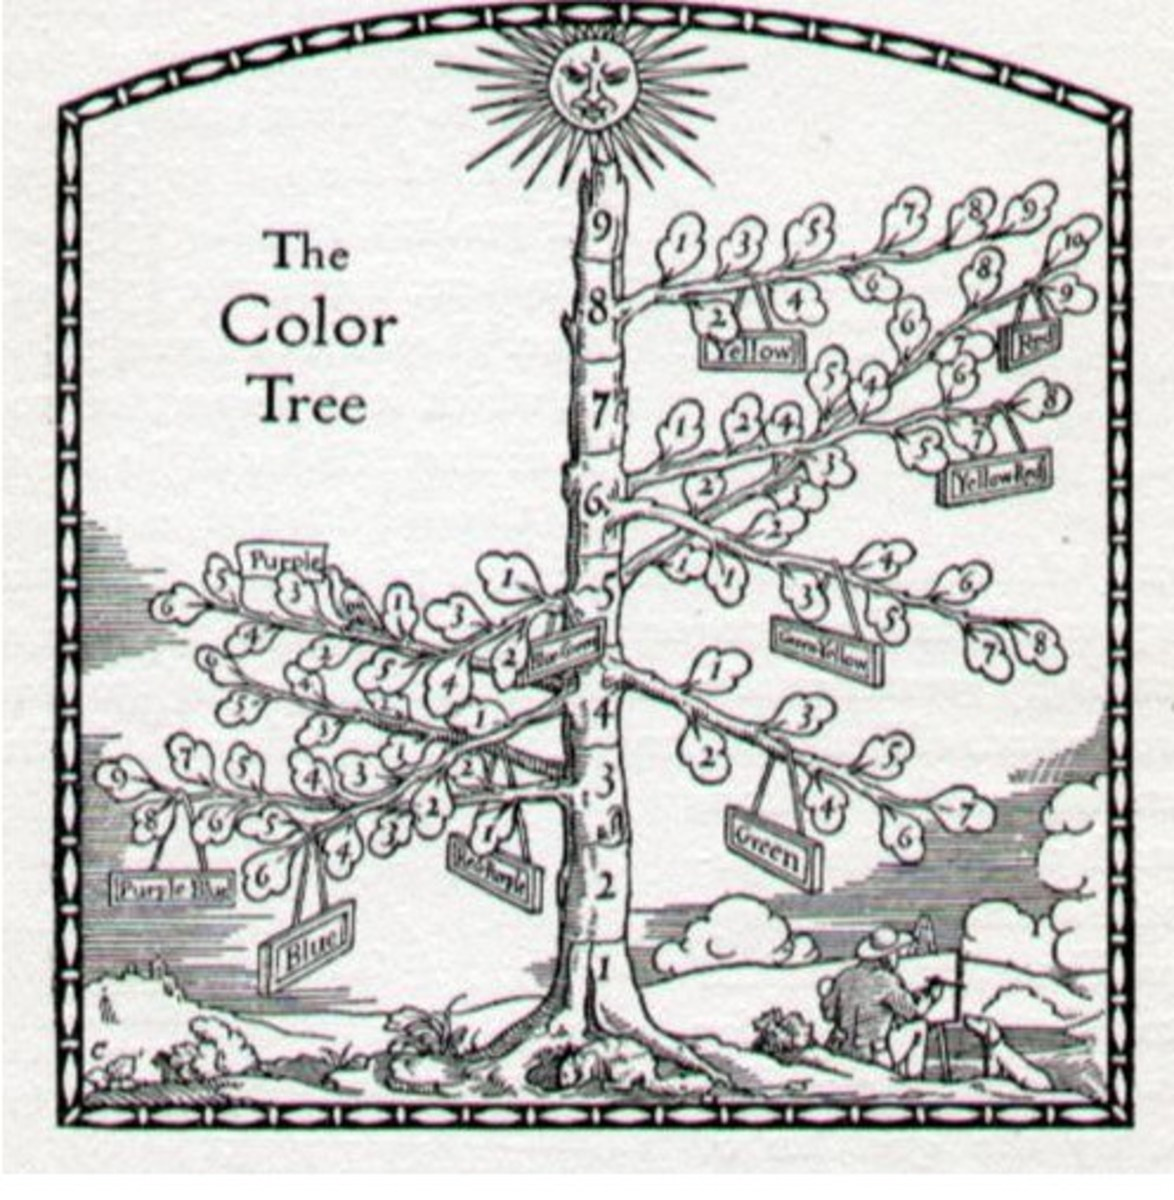 """Not all Hues reach full saturation in the same amount of steps.  The analogy of a color tree is used to explain how some """"branches"""" can be longer than others.  For example, red needs the most steps to final saturation while blue green, the least."""